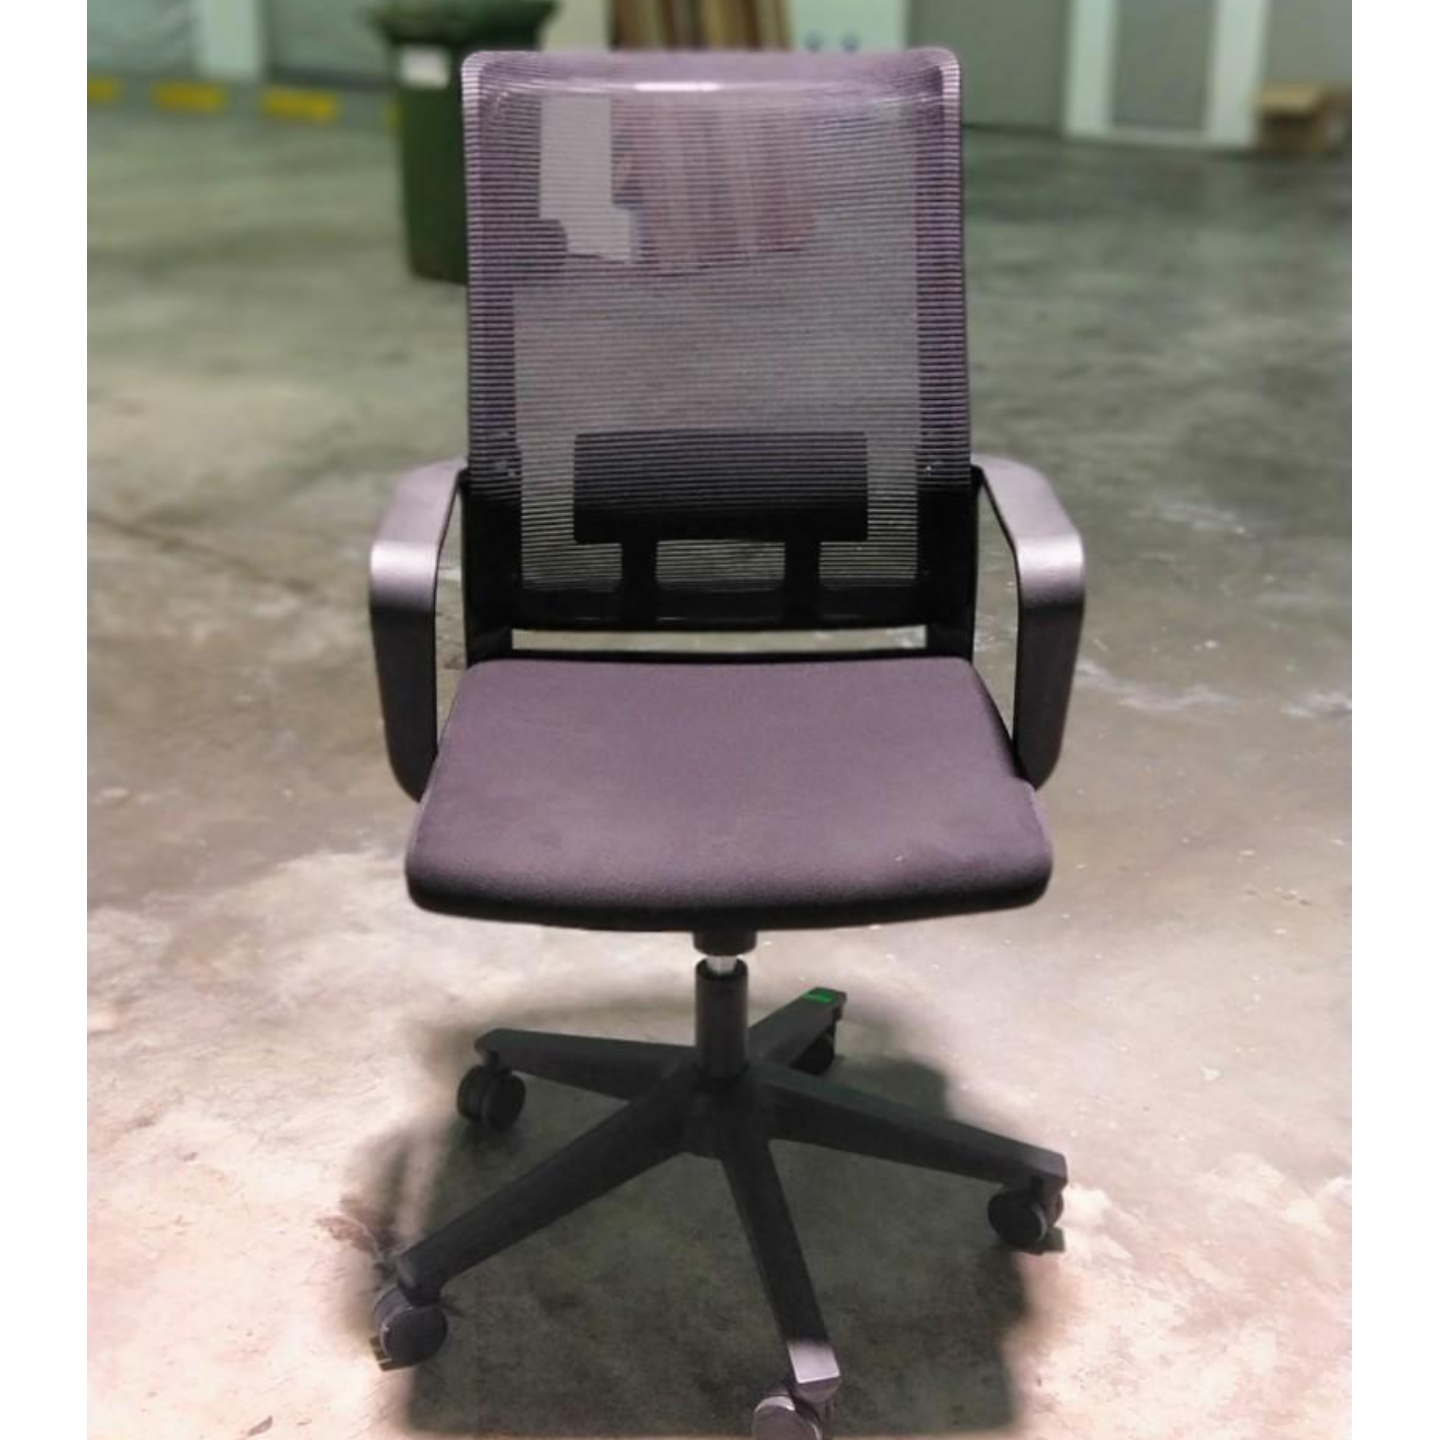 XENOM Mesh Office Chair